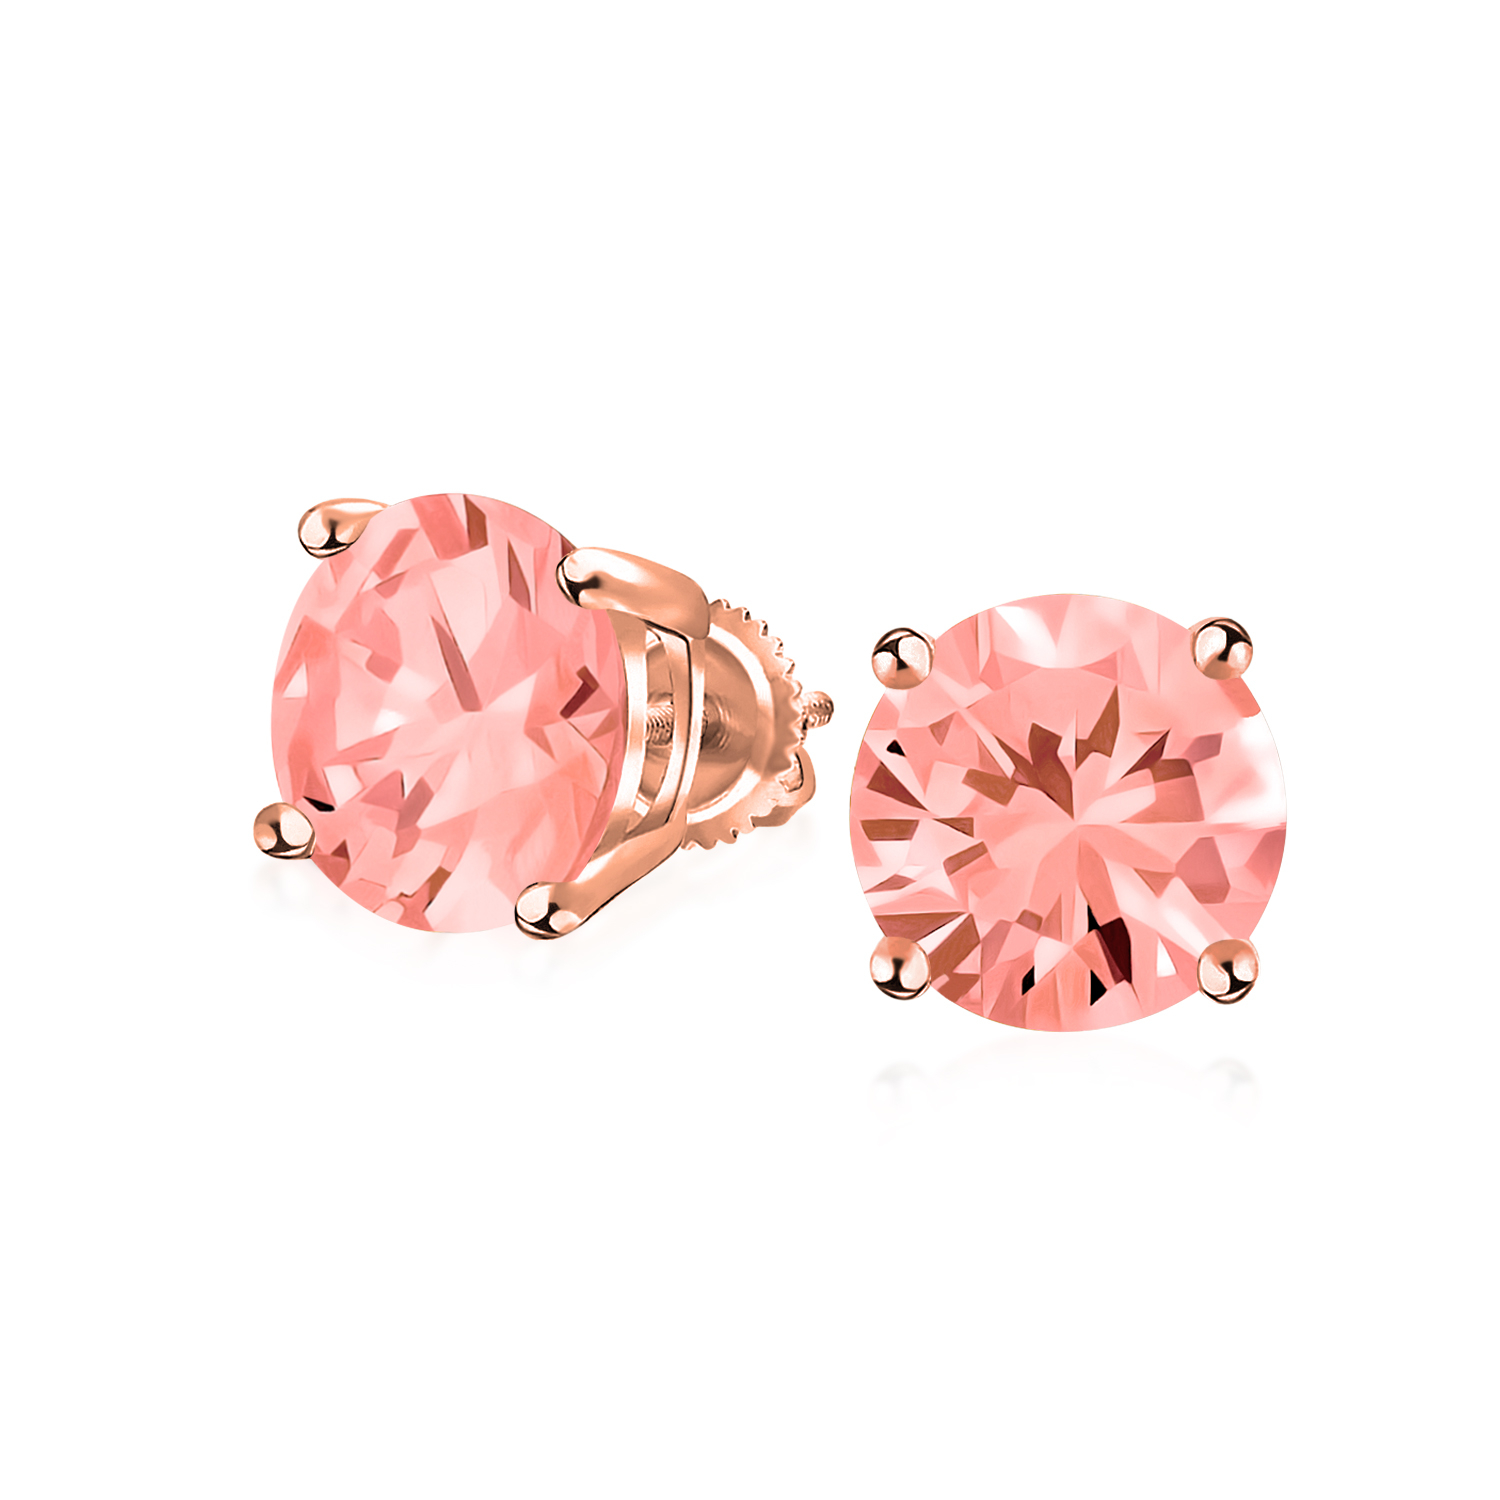 Solitaire Stud Post Earring Round Rose Pink CZ Rose Tone Plated 925 Sterling Silver